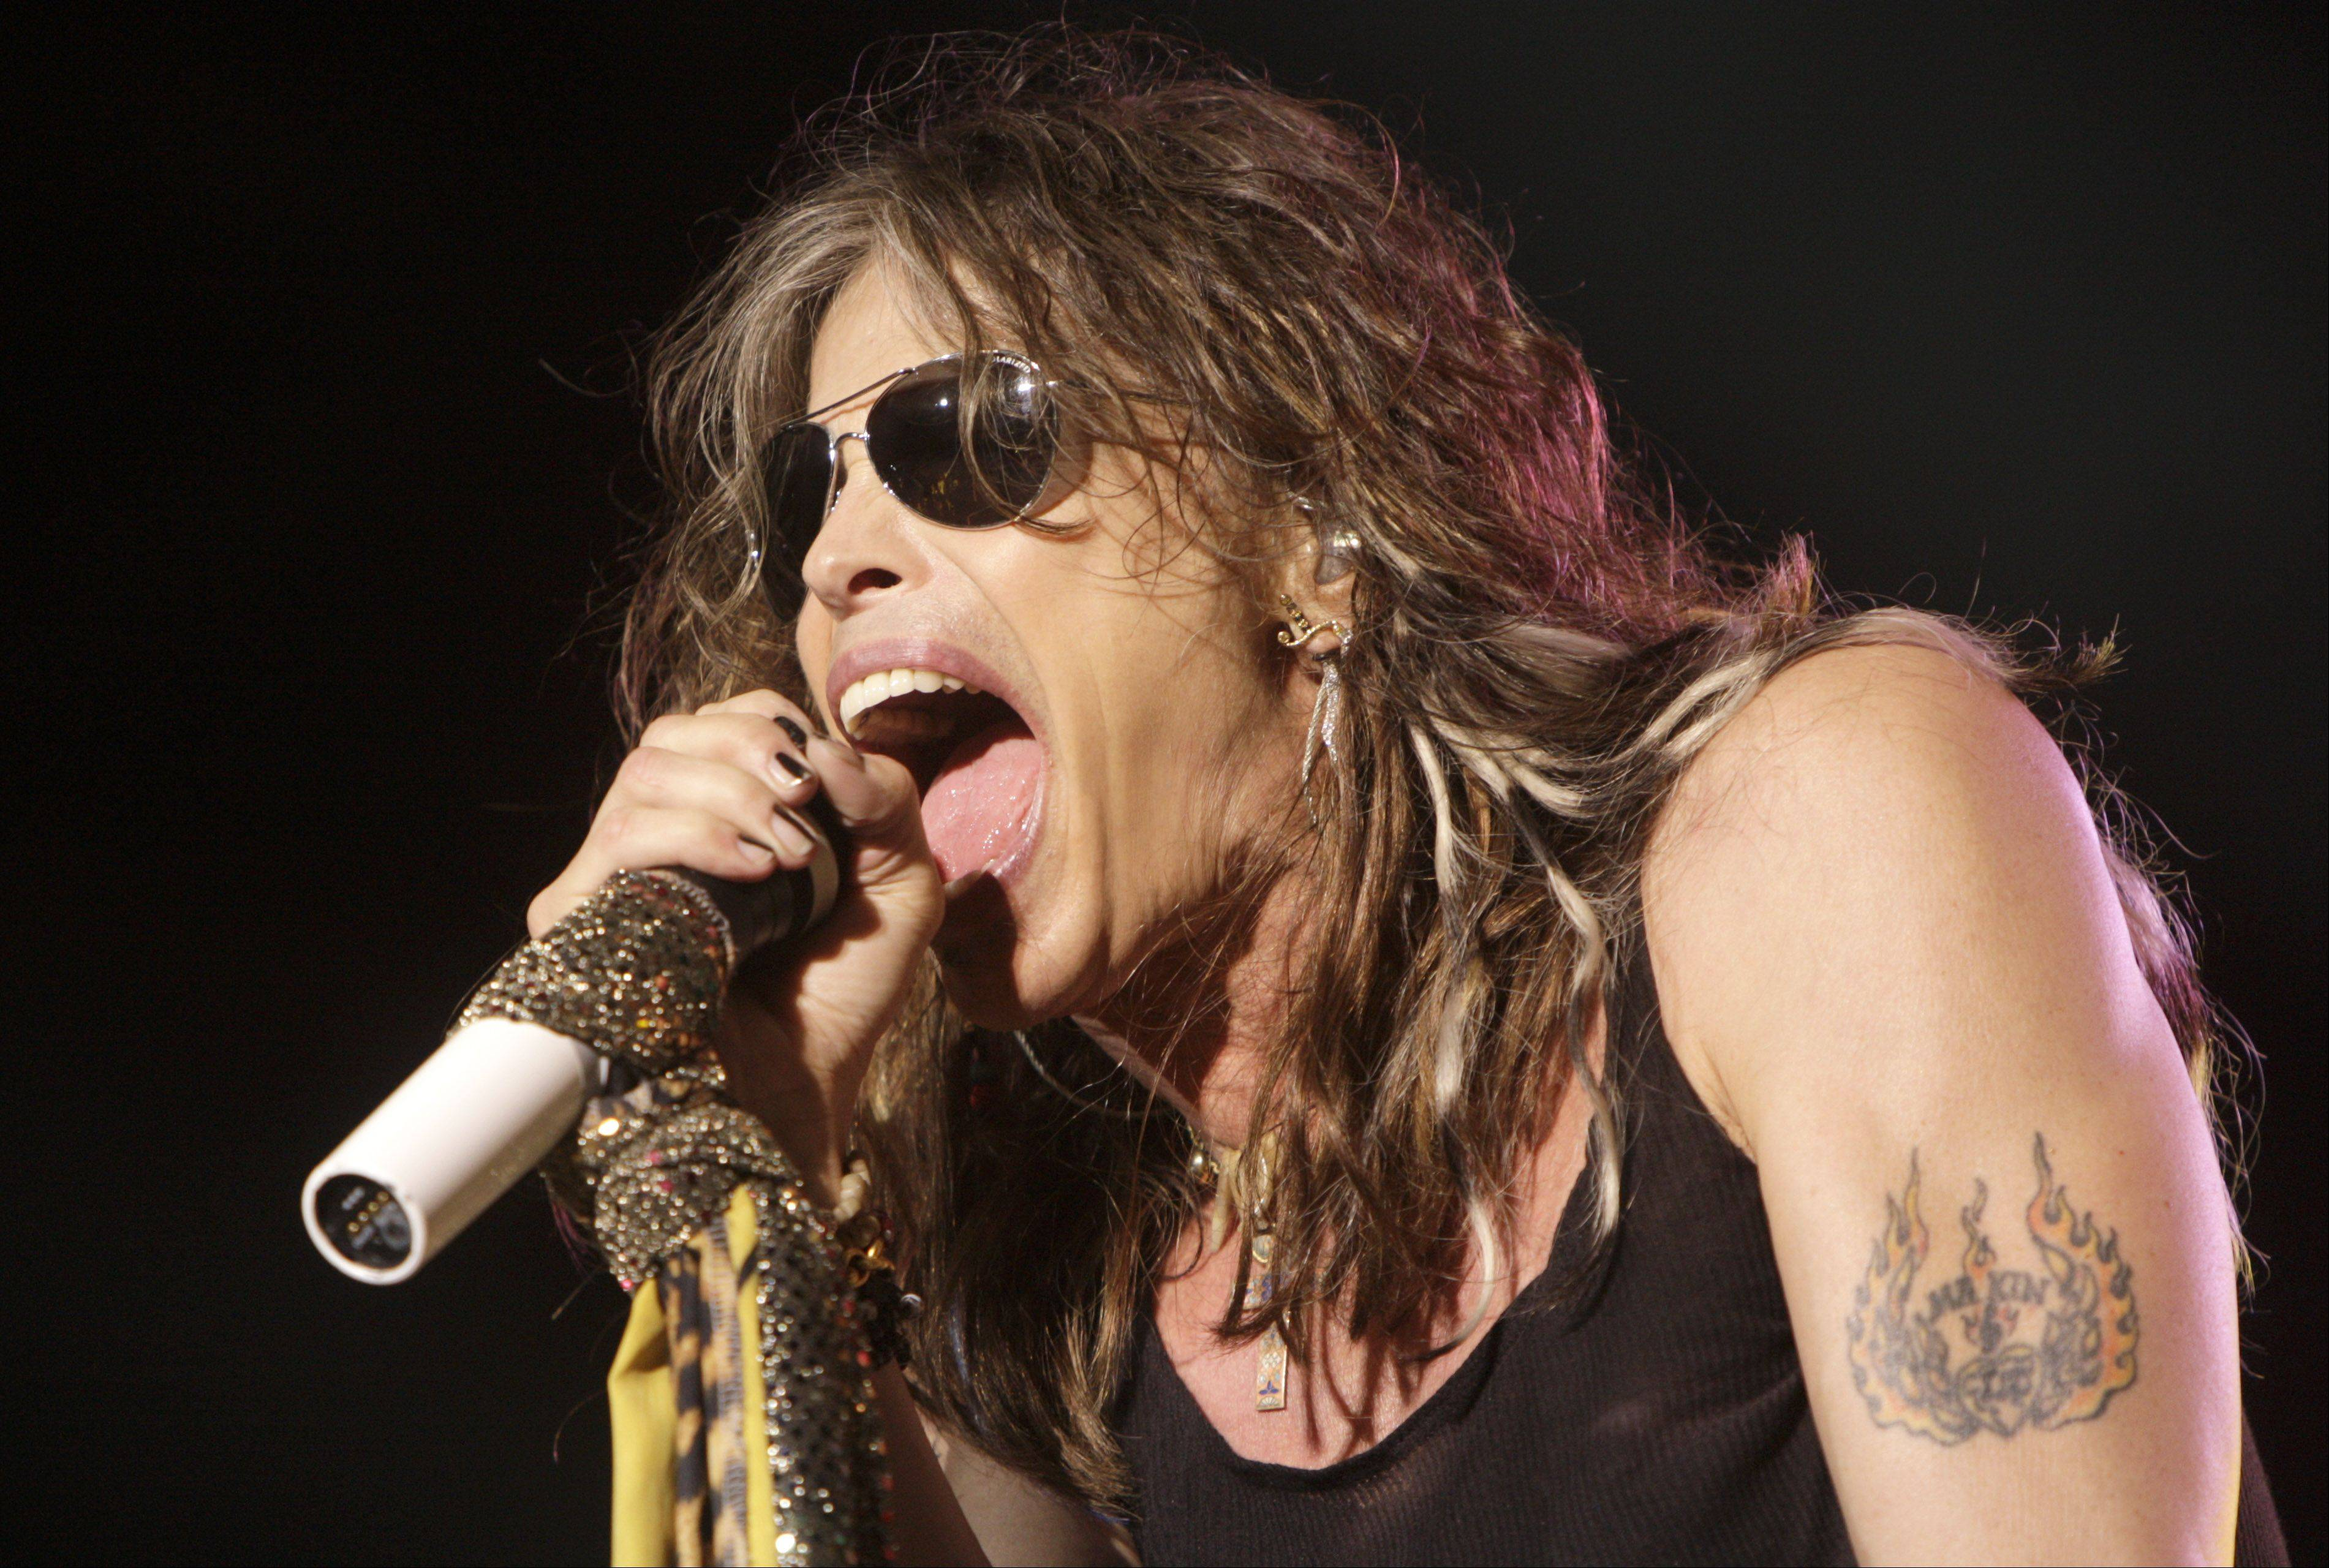 The future is looking bleak for a celebrity privacy bill in Hawaii known as the Steven Tyler Act. The proposal pushed by the Aerosmith lead singer would allow people to sue others who take photos or videos of their private moments.